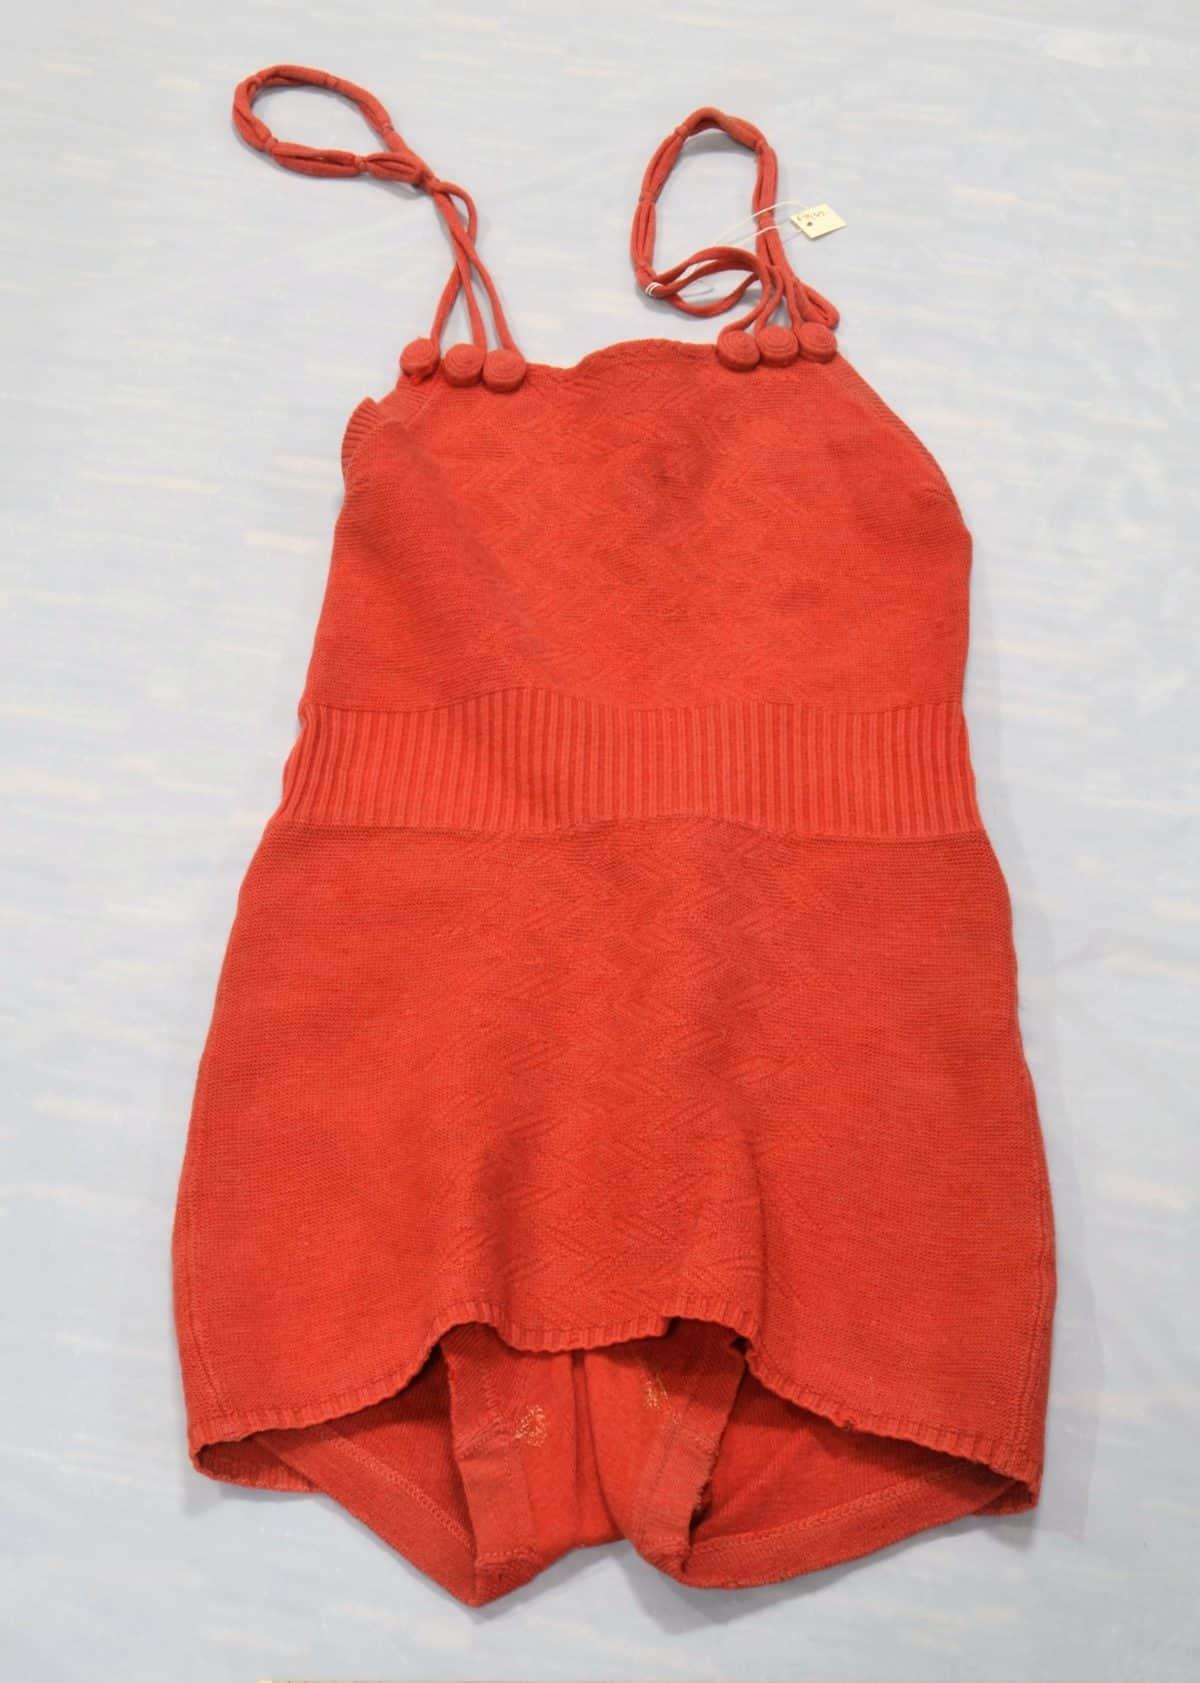 Seaside holidays 16F7962 Coral, woollen, bathing suit cropped